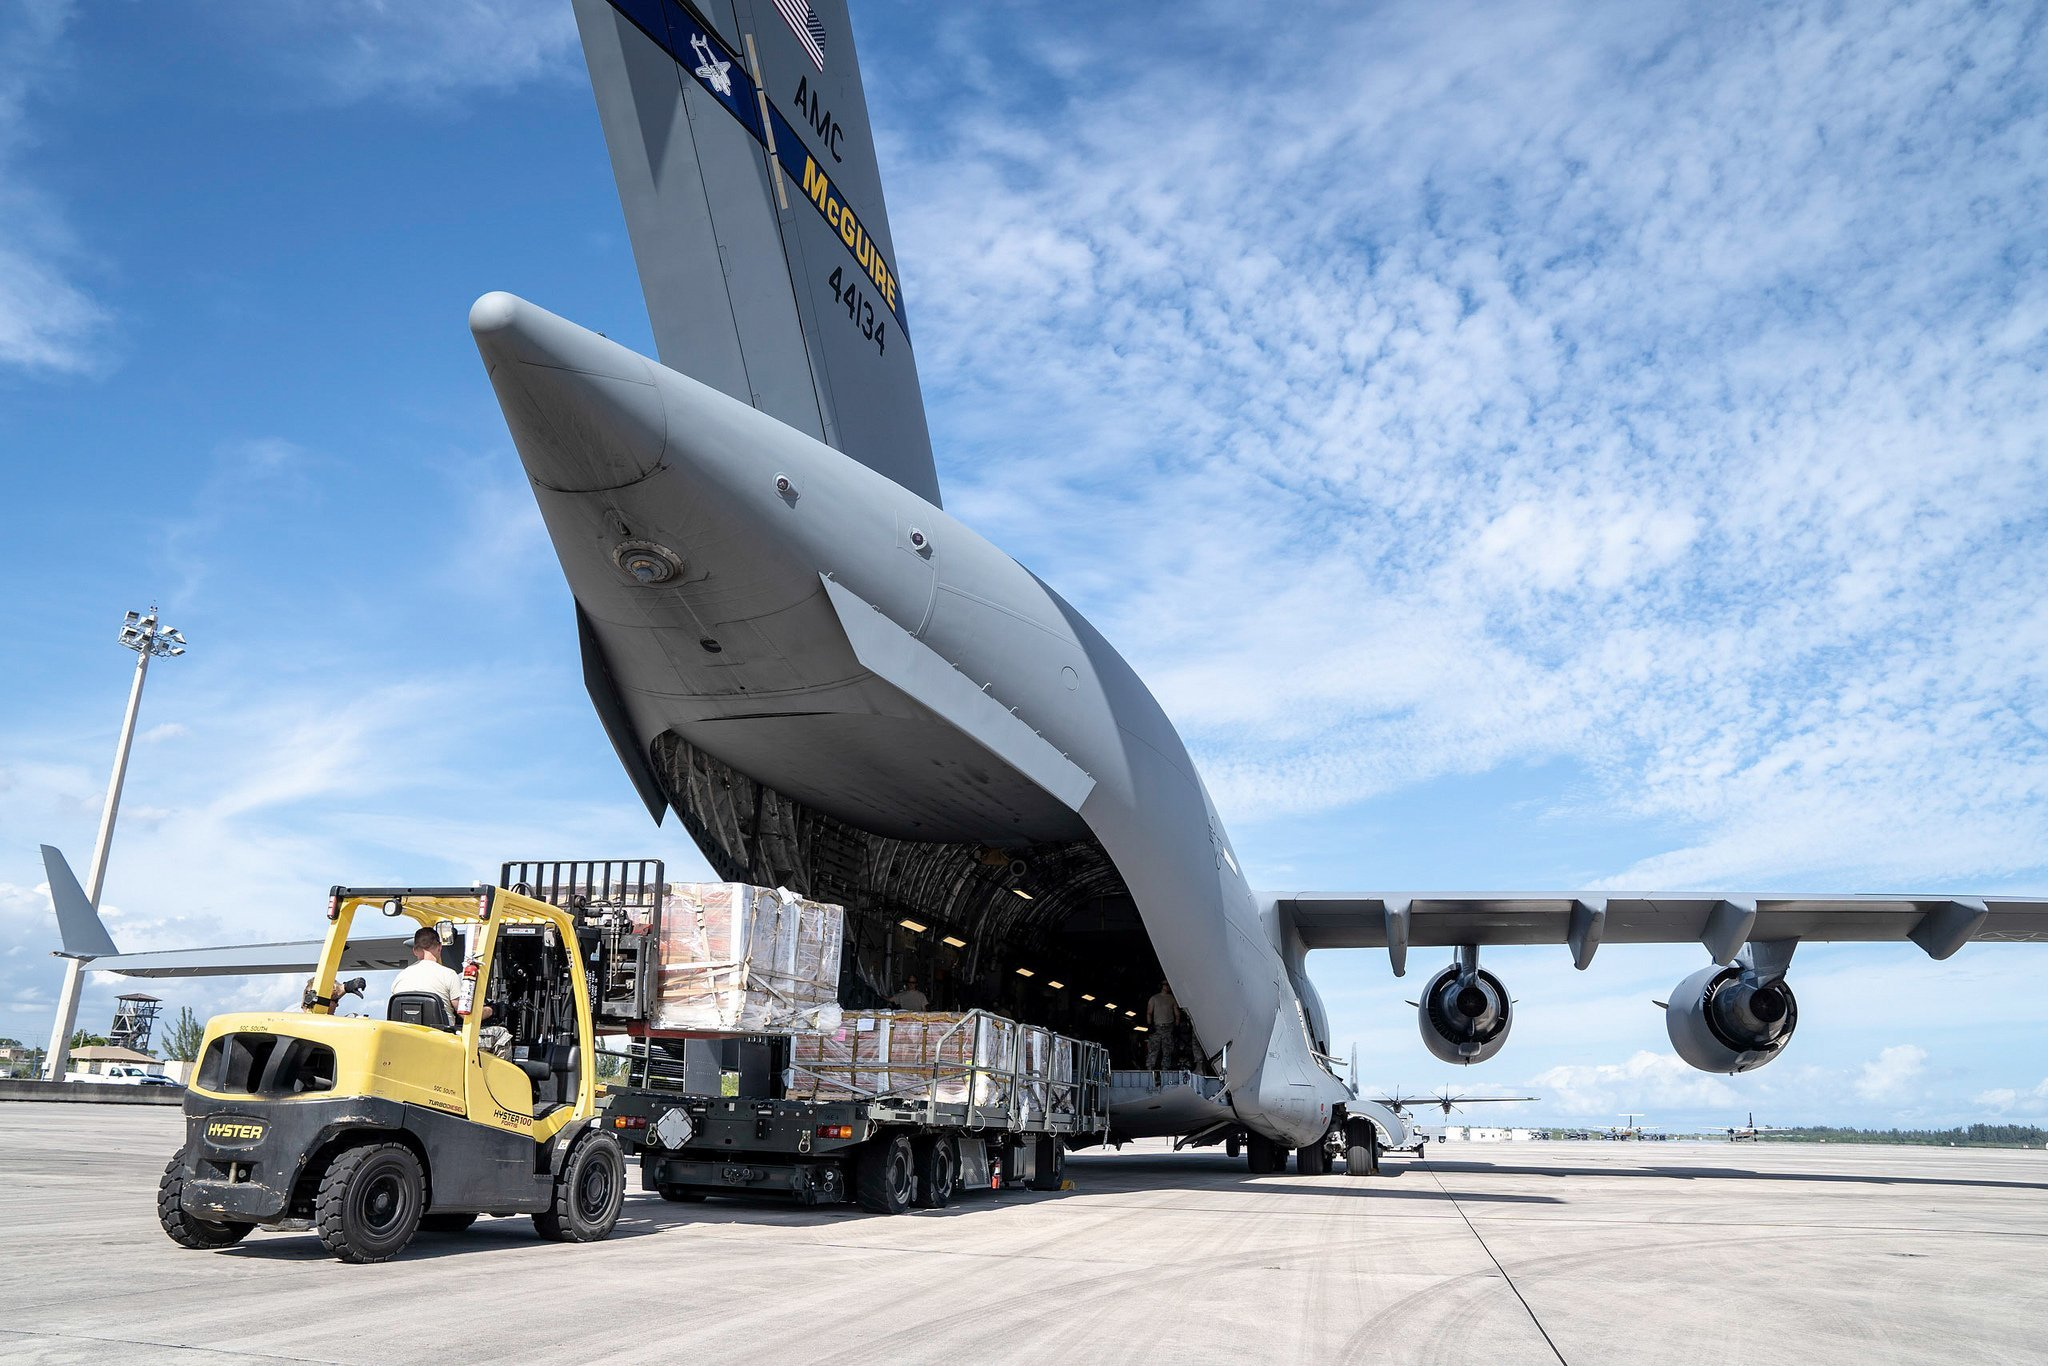 70th Aerial Port Squadron personnel load a C-17 Globemaster III cargo aircraft from Joint Base McGuire-Dix-Lakehurst, N.J., with humanitarian aid to be delivered to Cucuta, Columbia, for eventual distribution by relief organizations on the ground for Venezuelans Feb. 16, 2019. (U.S. Air Force photo/Tech. Sgt. Ben Hayes)